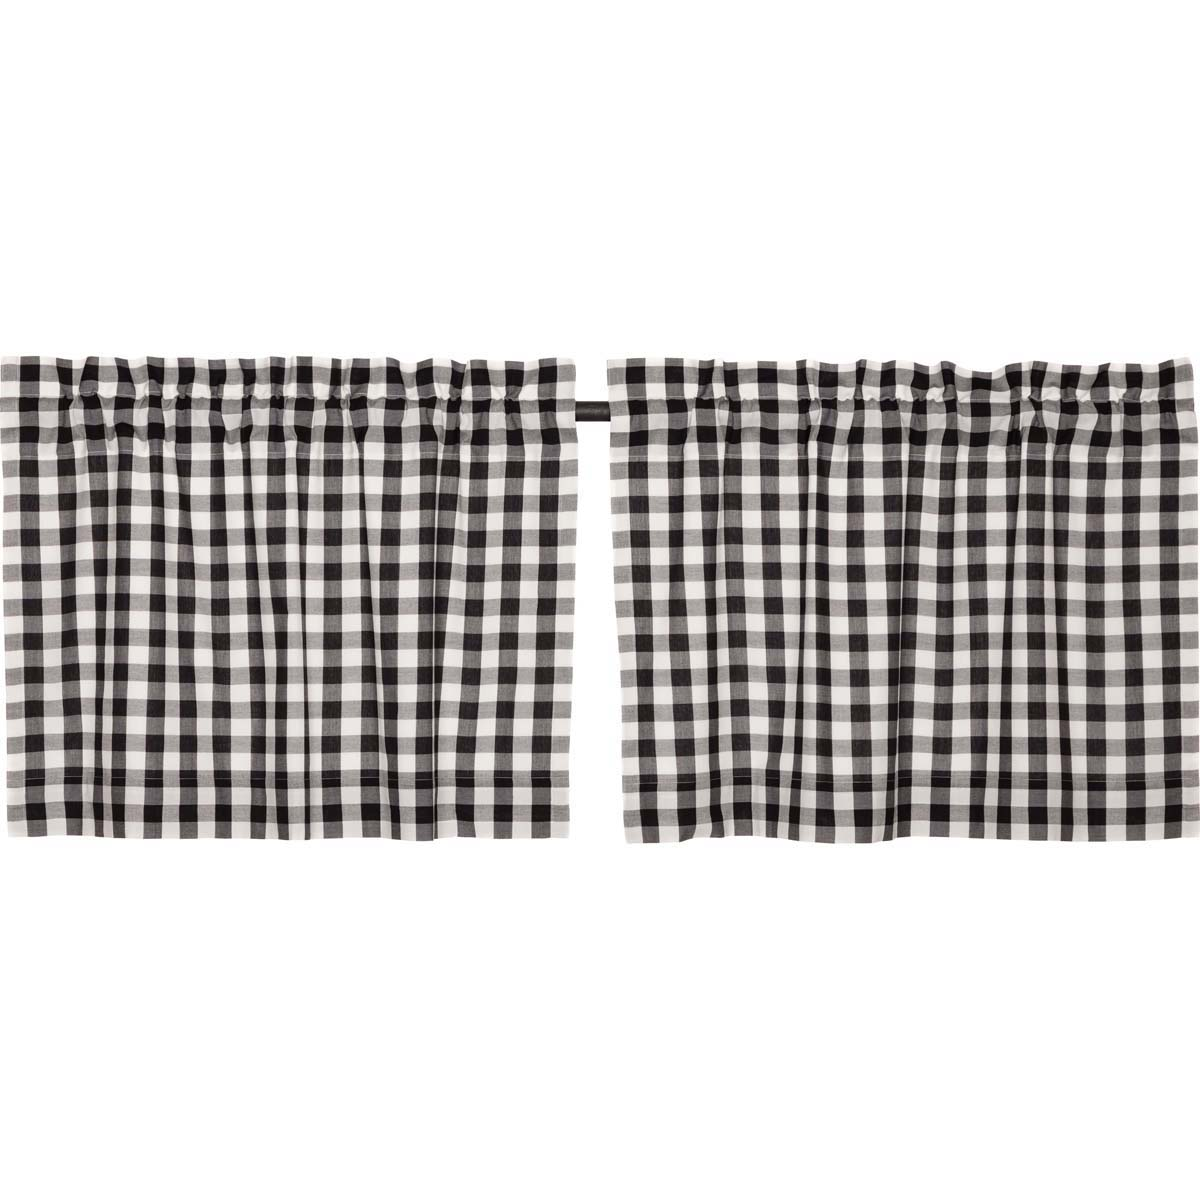 Annie Buffalo Black Check Tier Set of 2 L24xW36